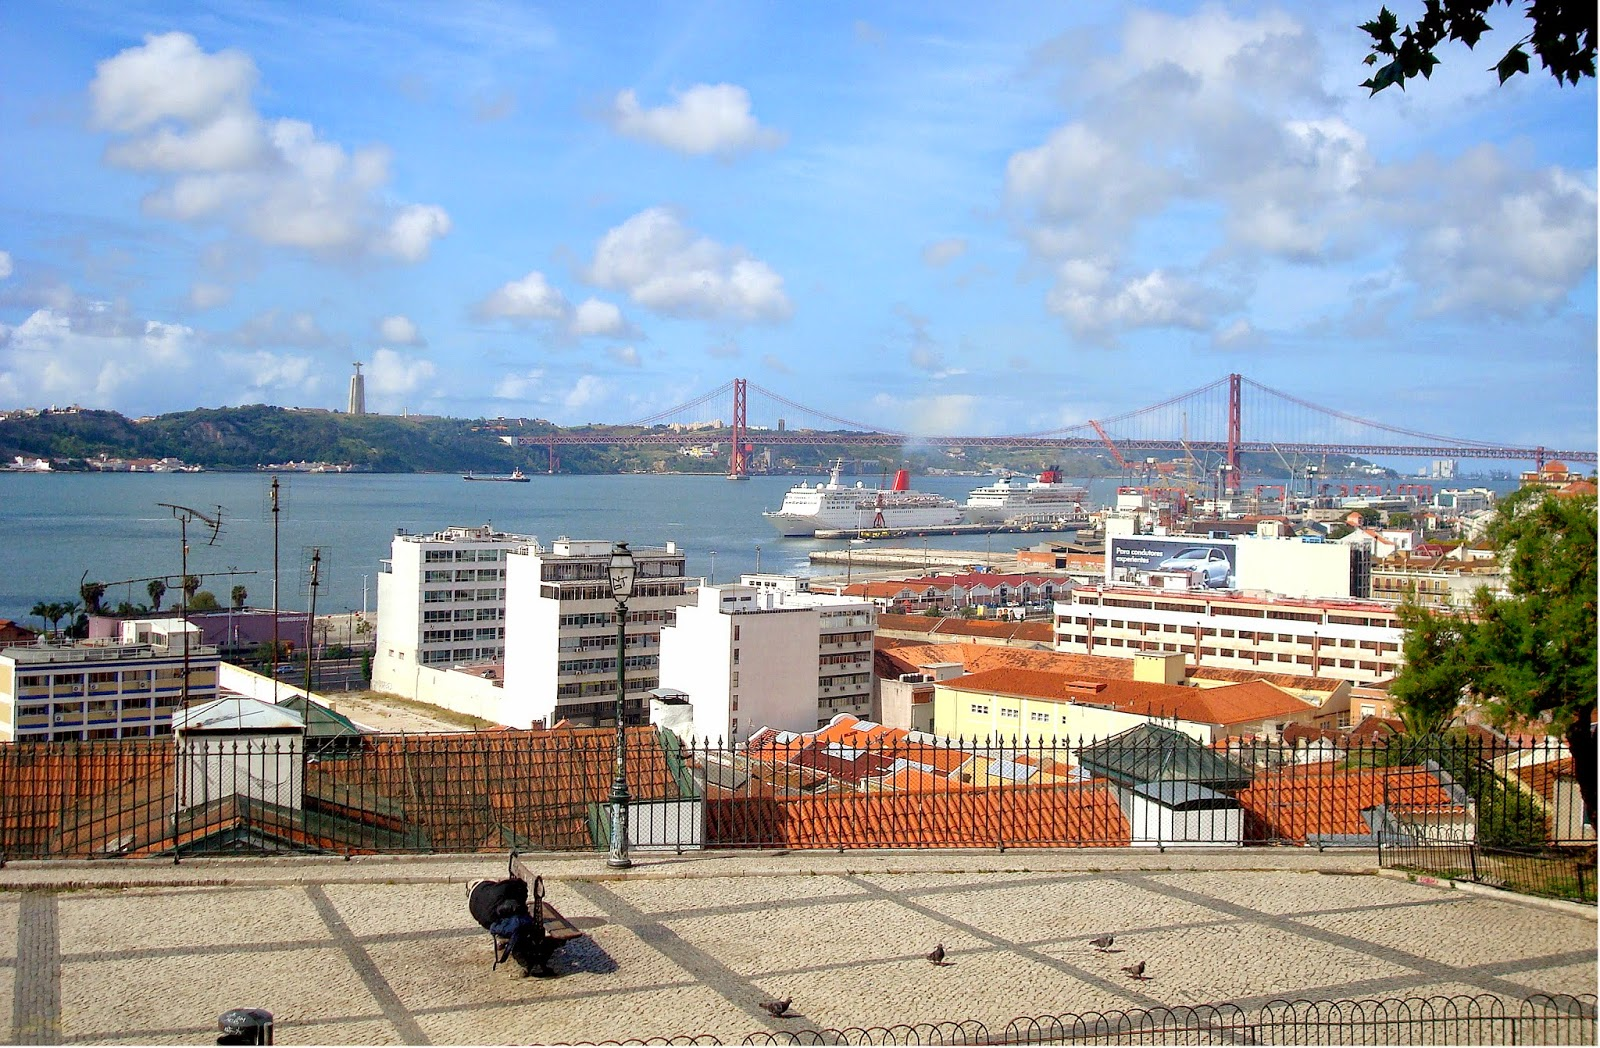 Tagus River and Ponte 25 de Abril, Lisbon, Portugal